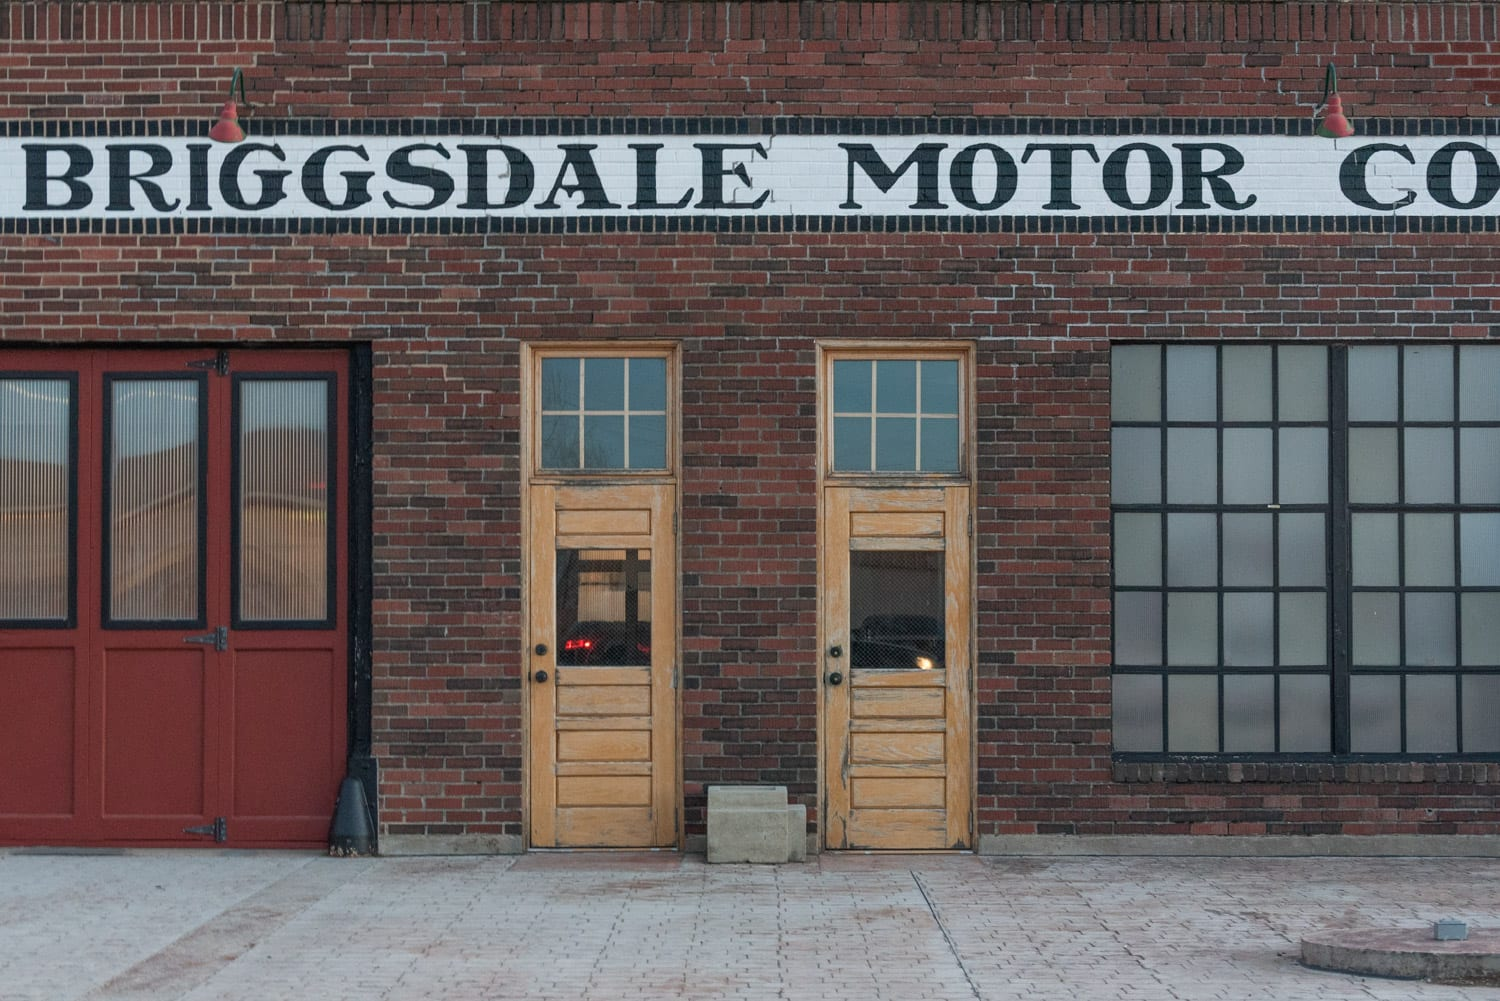 image of Briggsdale Motor Co